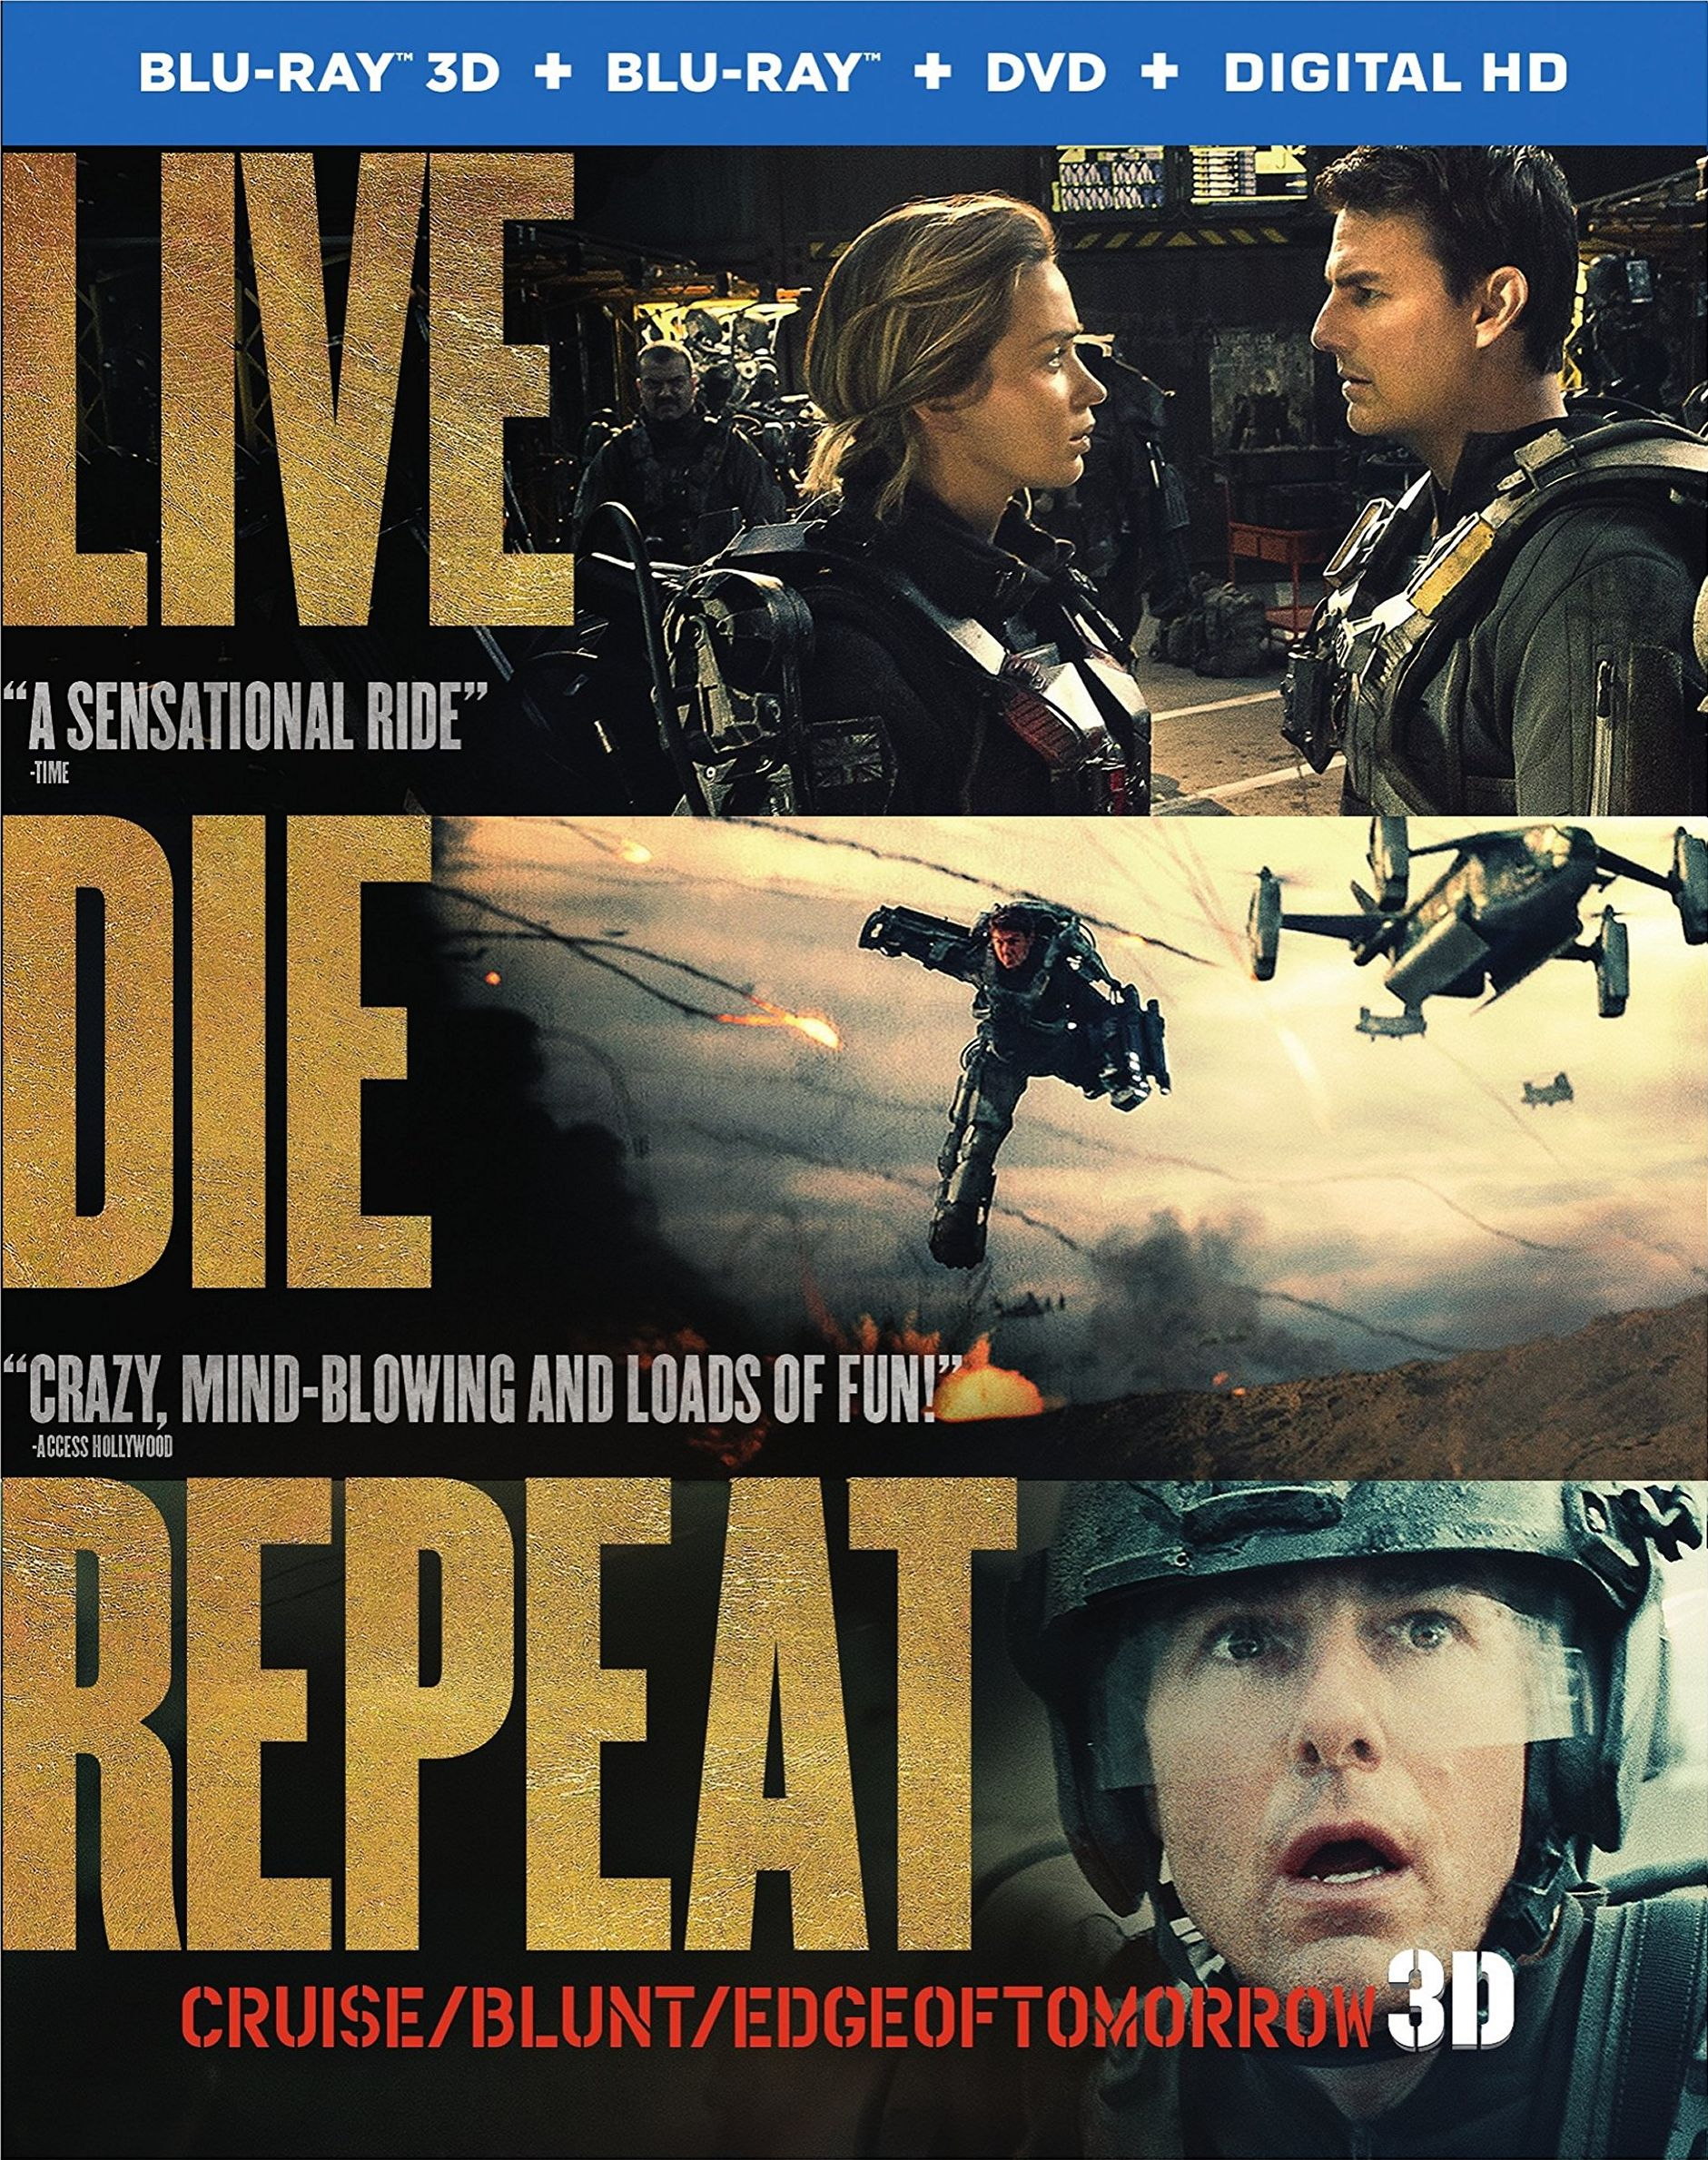 Edge of Tomorrow DVD Release Date October 7 2014